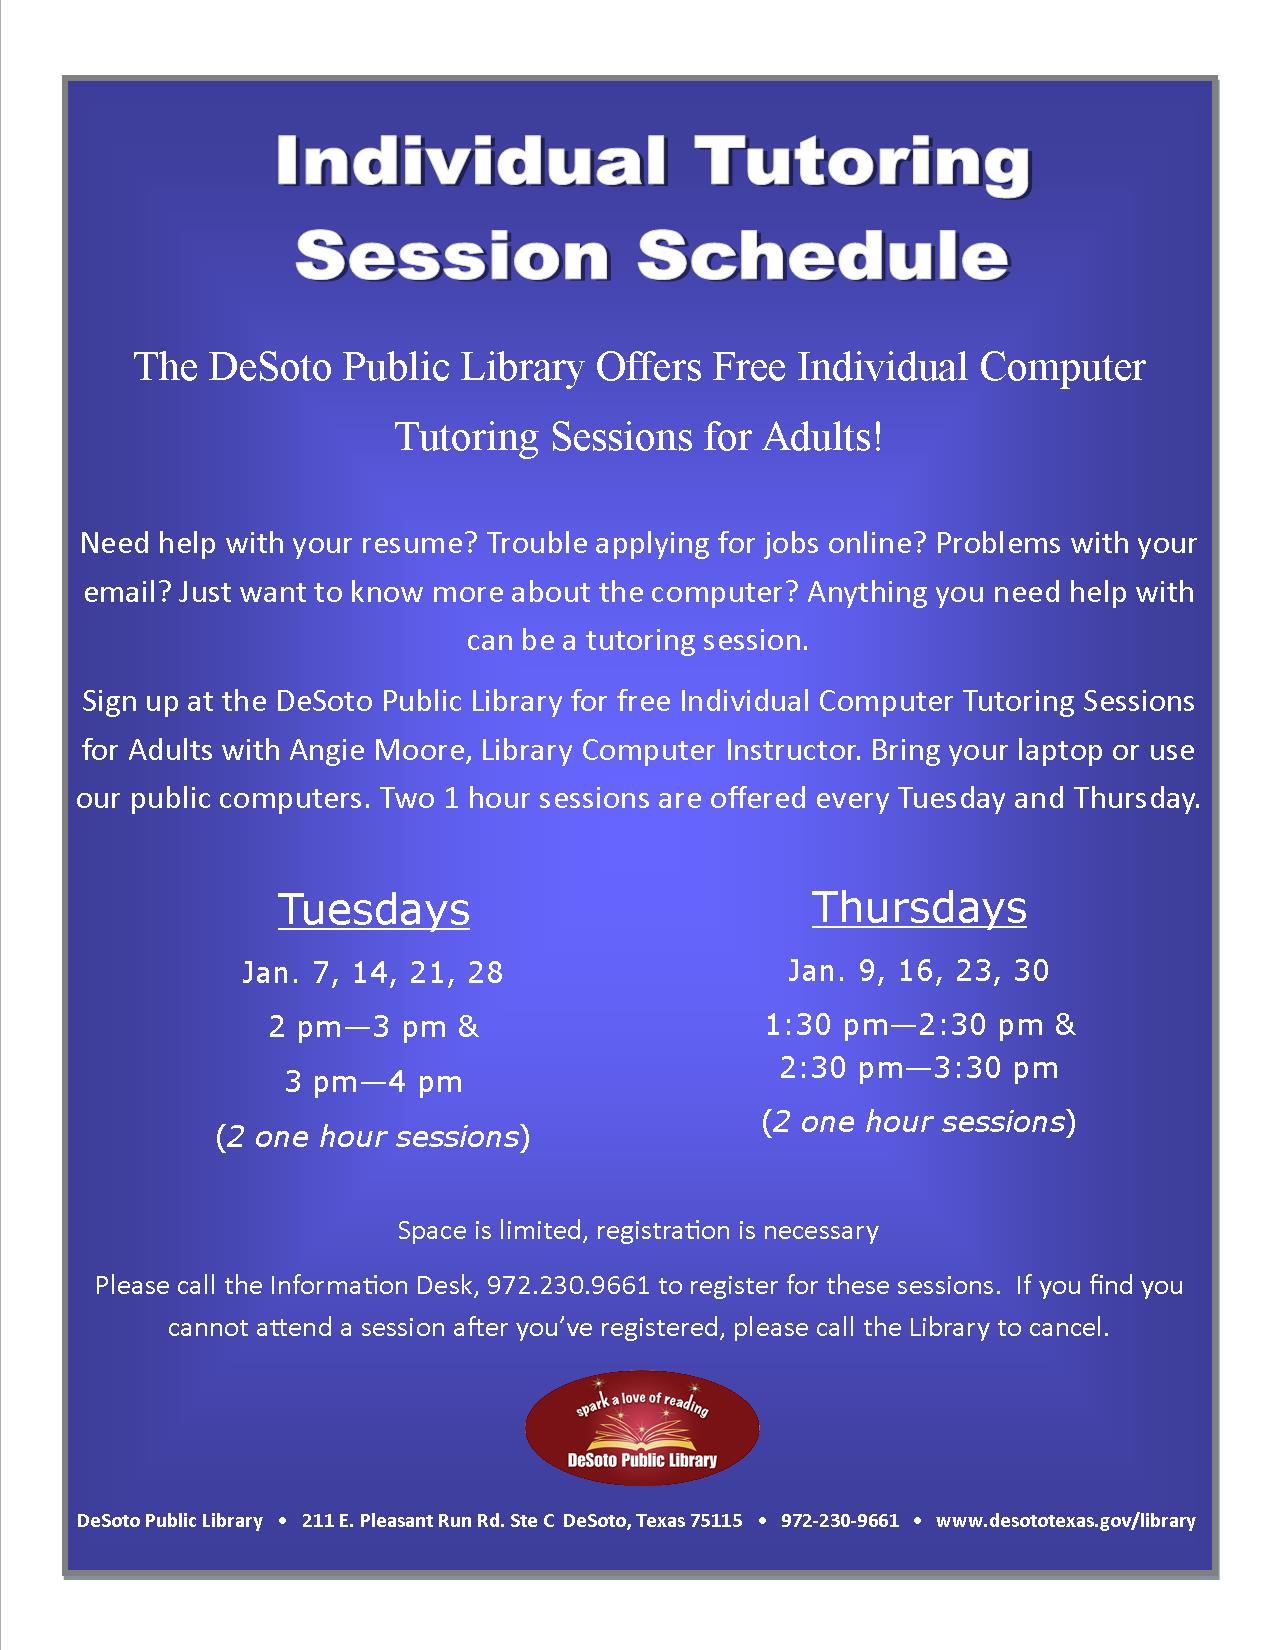 Individual Tutoring Schedule January 2014.jpg